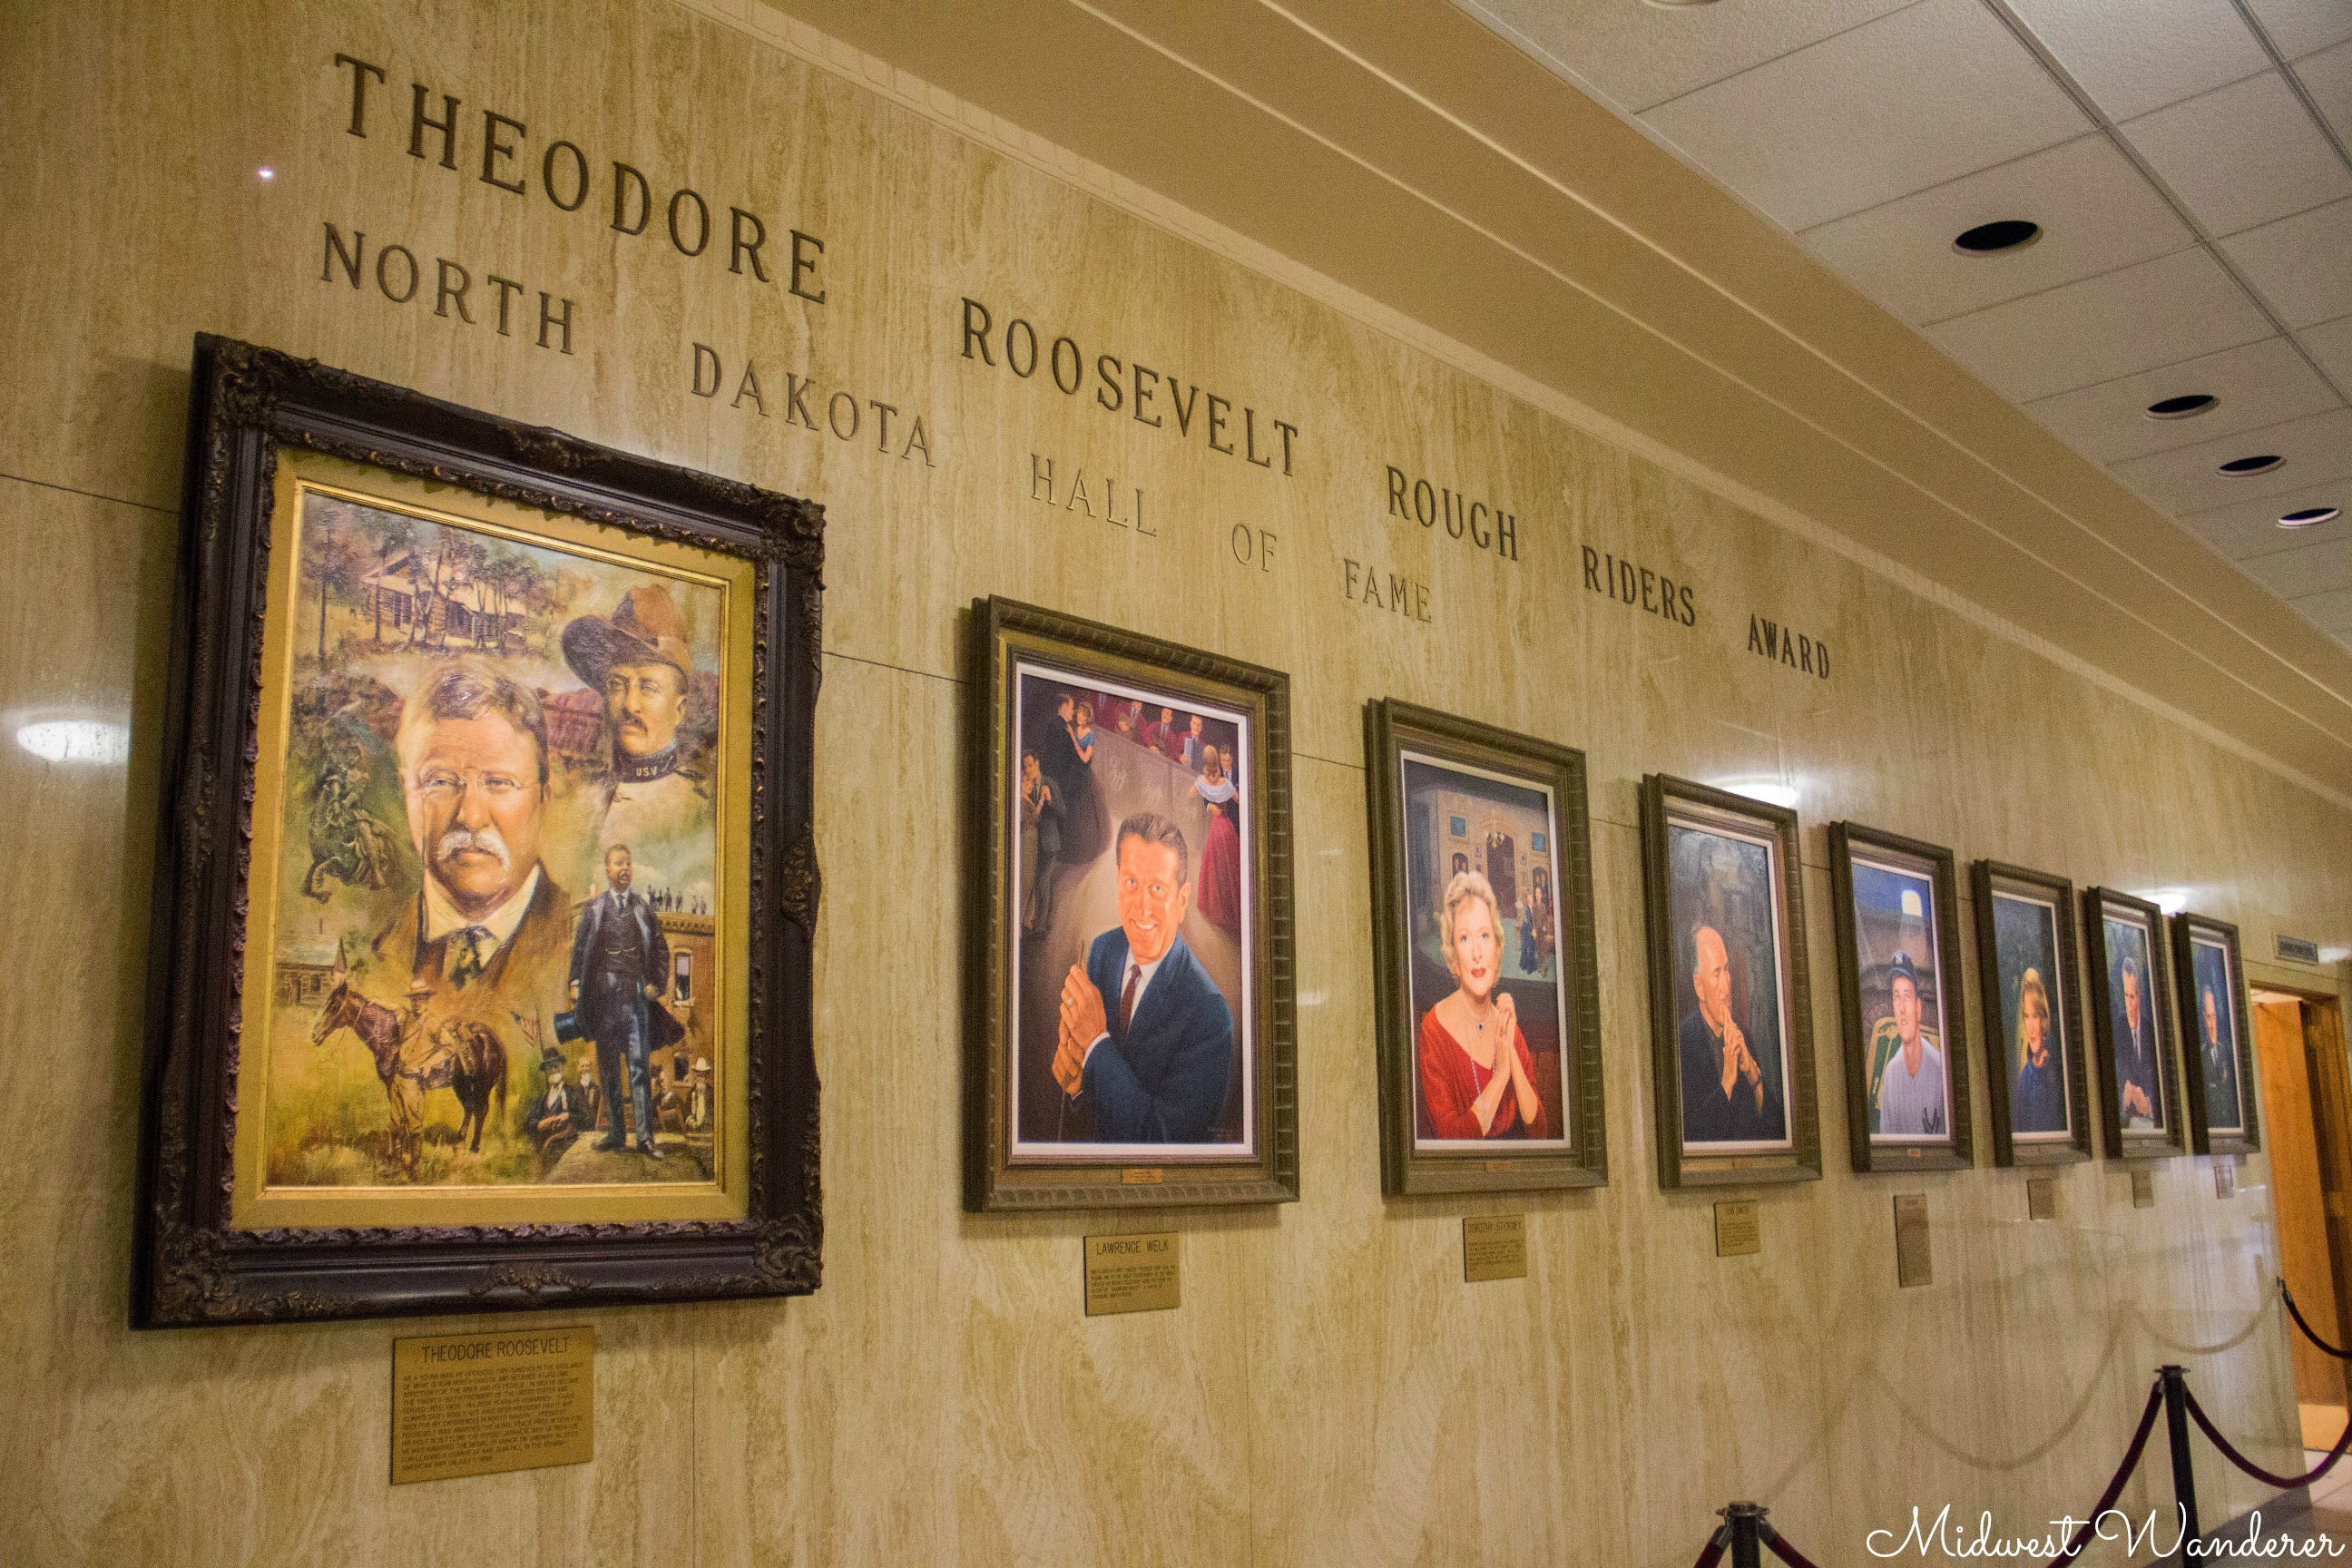 Rough Rider Hall of Fame